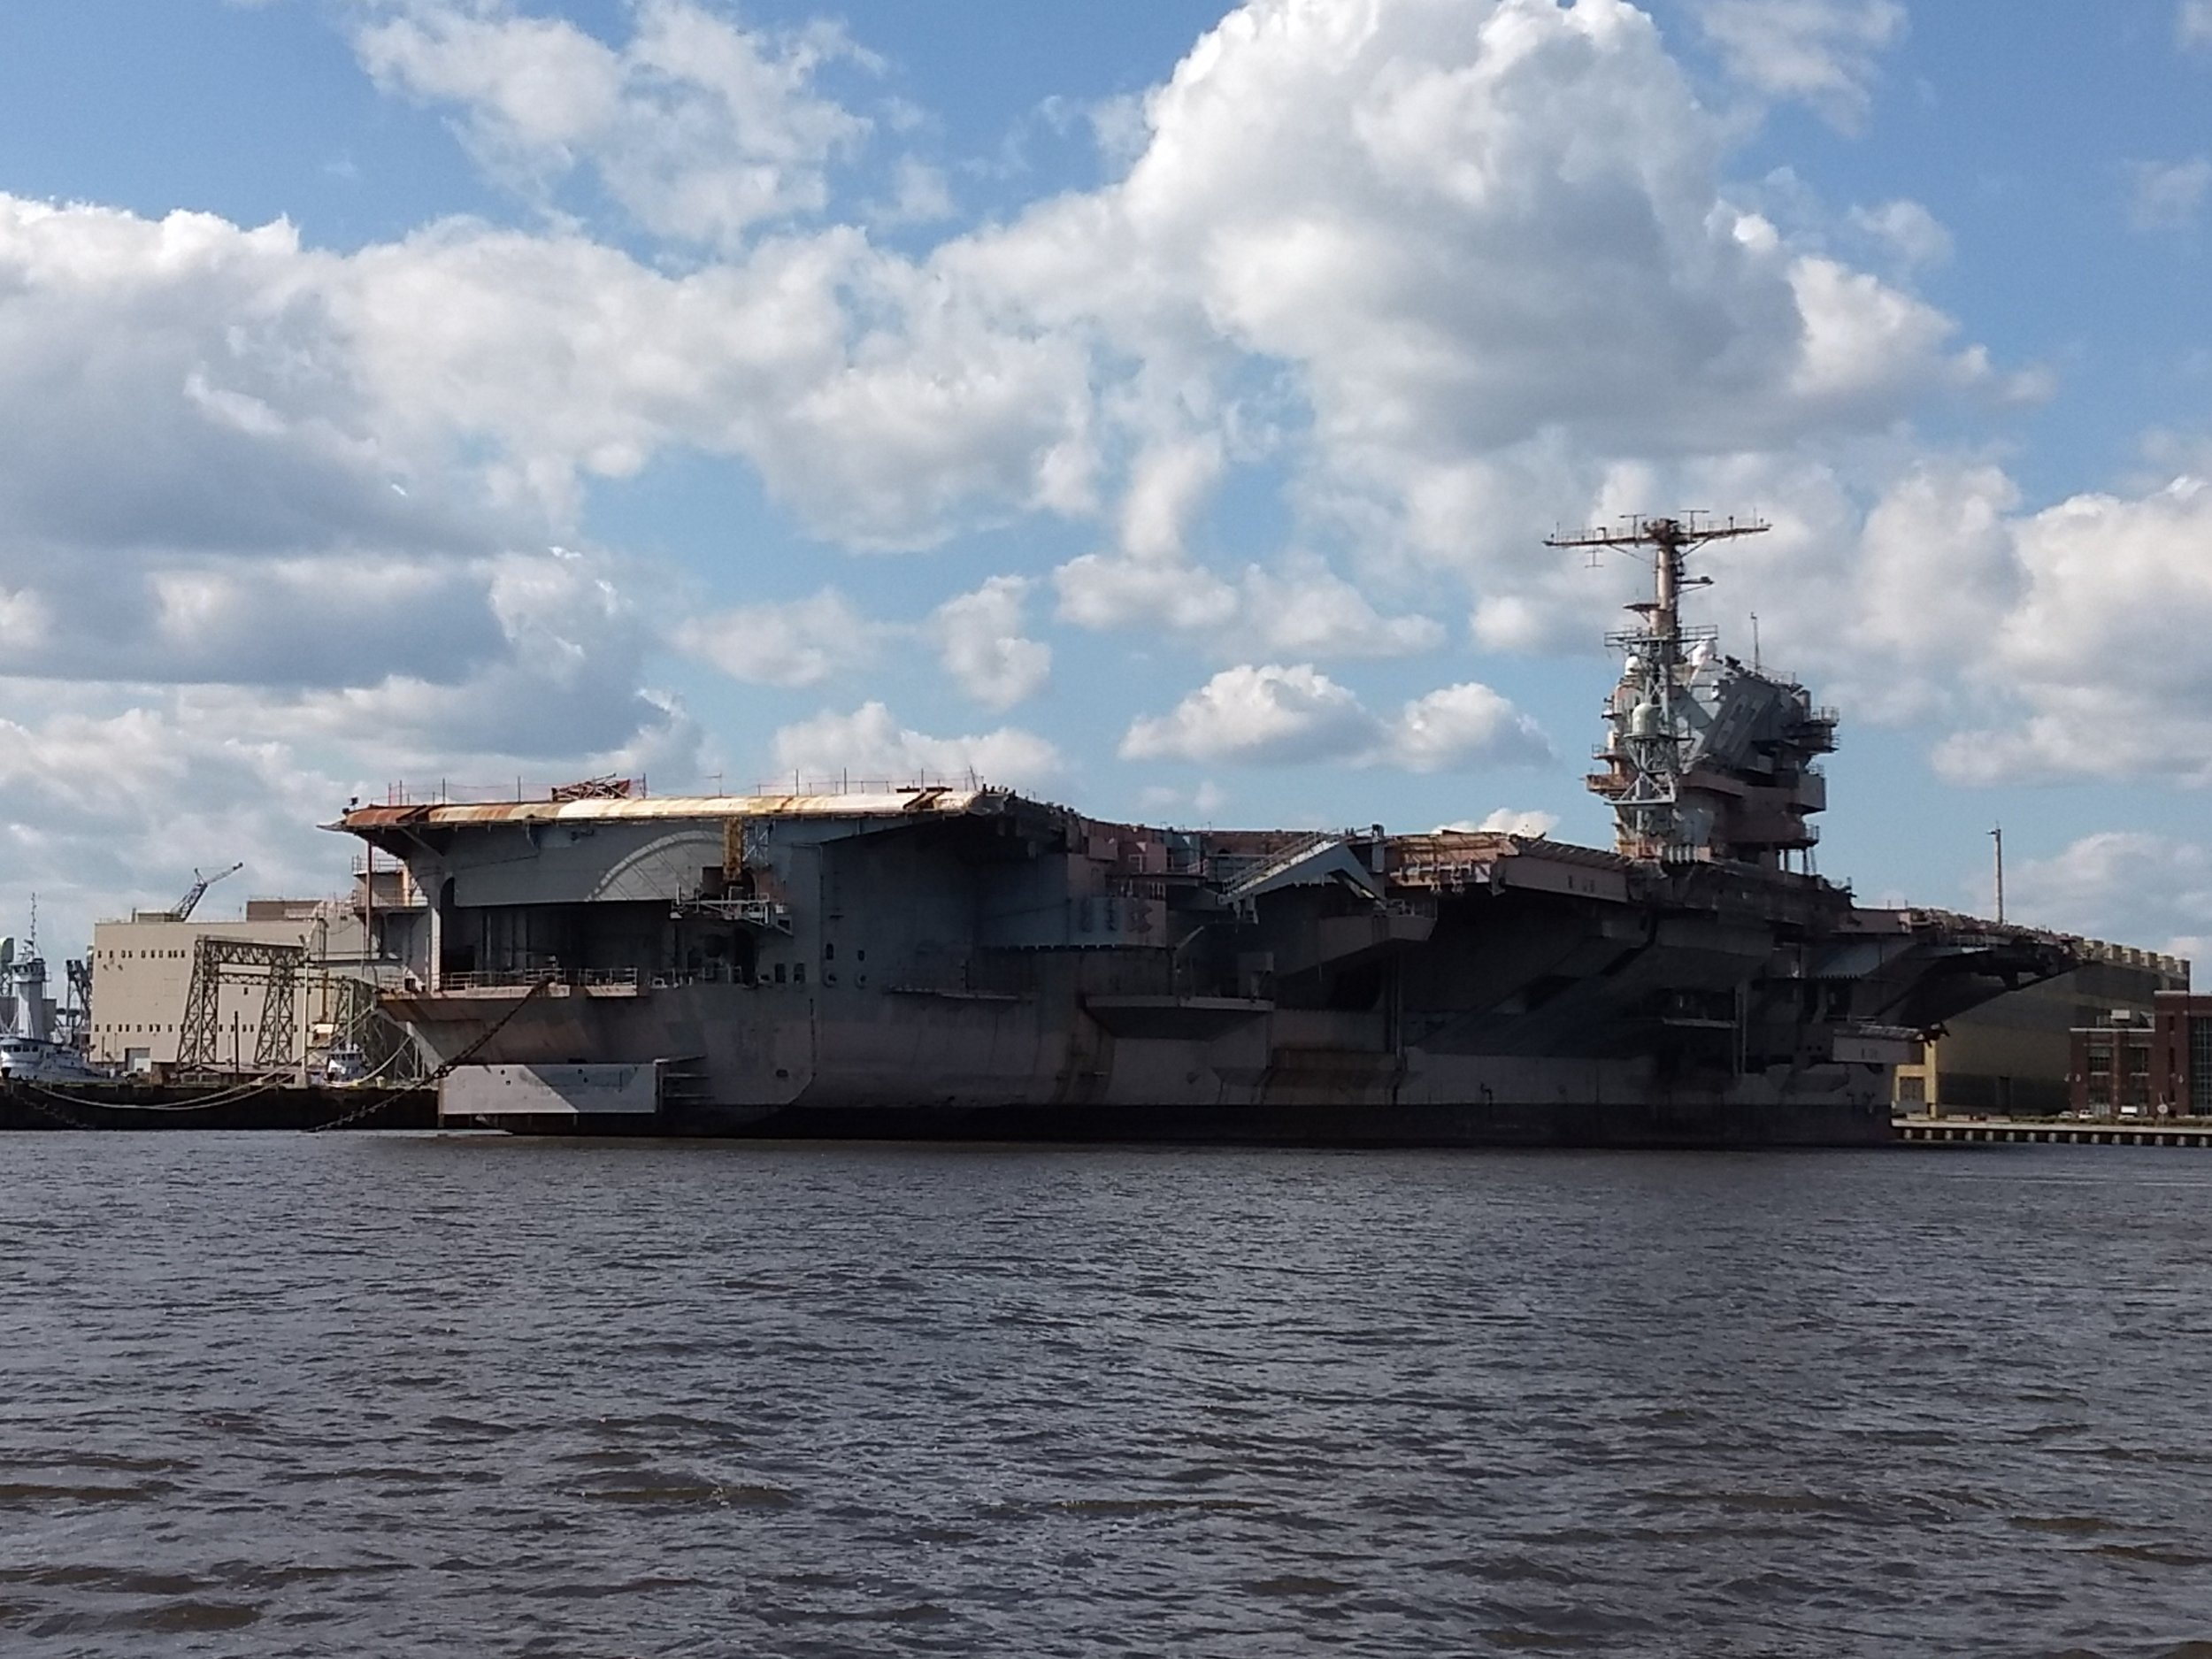 The USS John F. Kennedy Aircraft carrier being restored at the Philadelphia Naval Shipyard.